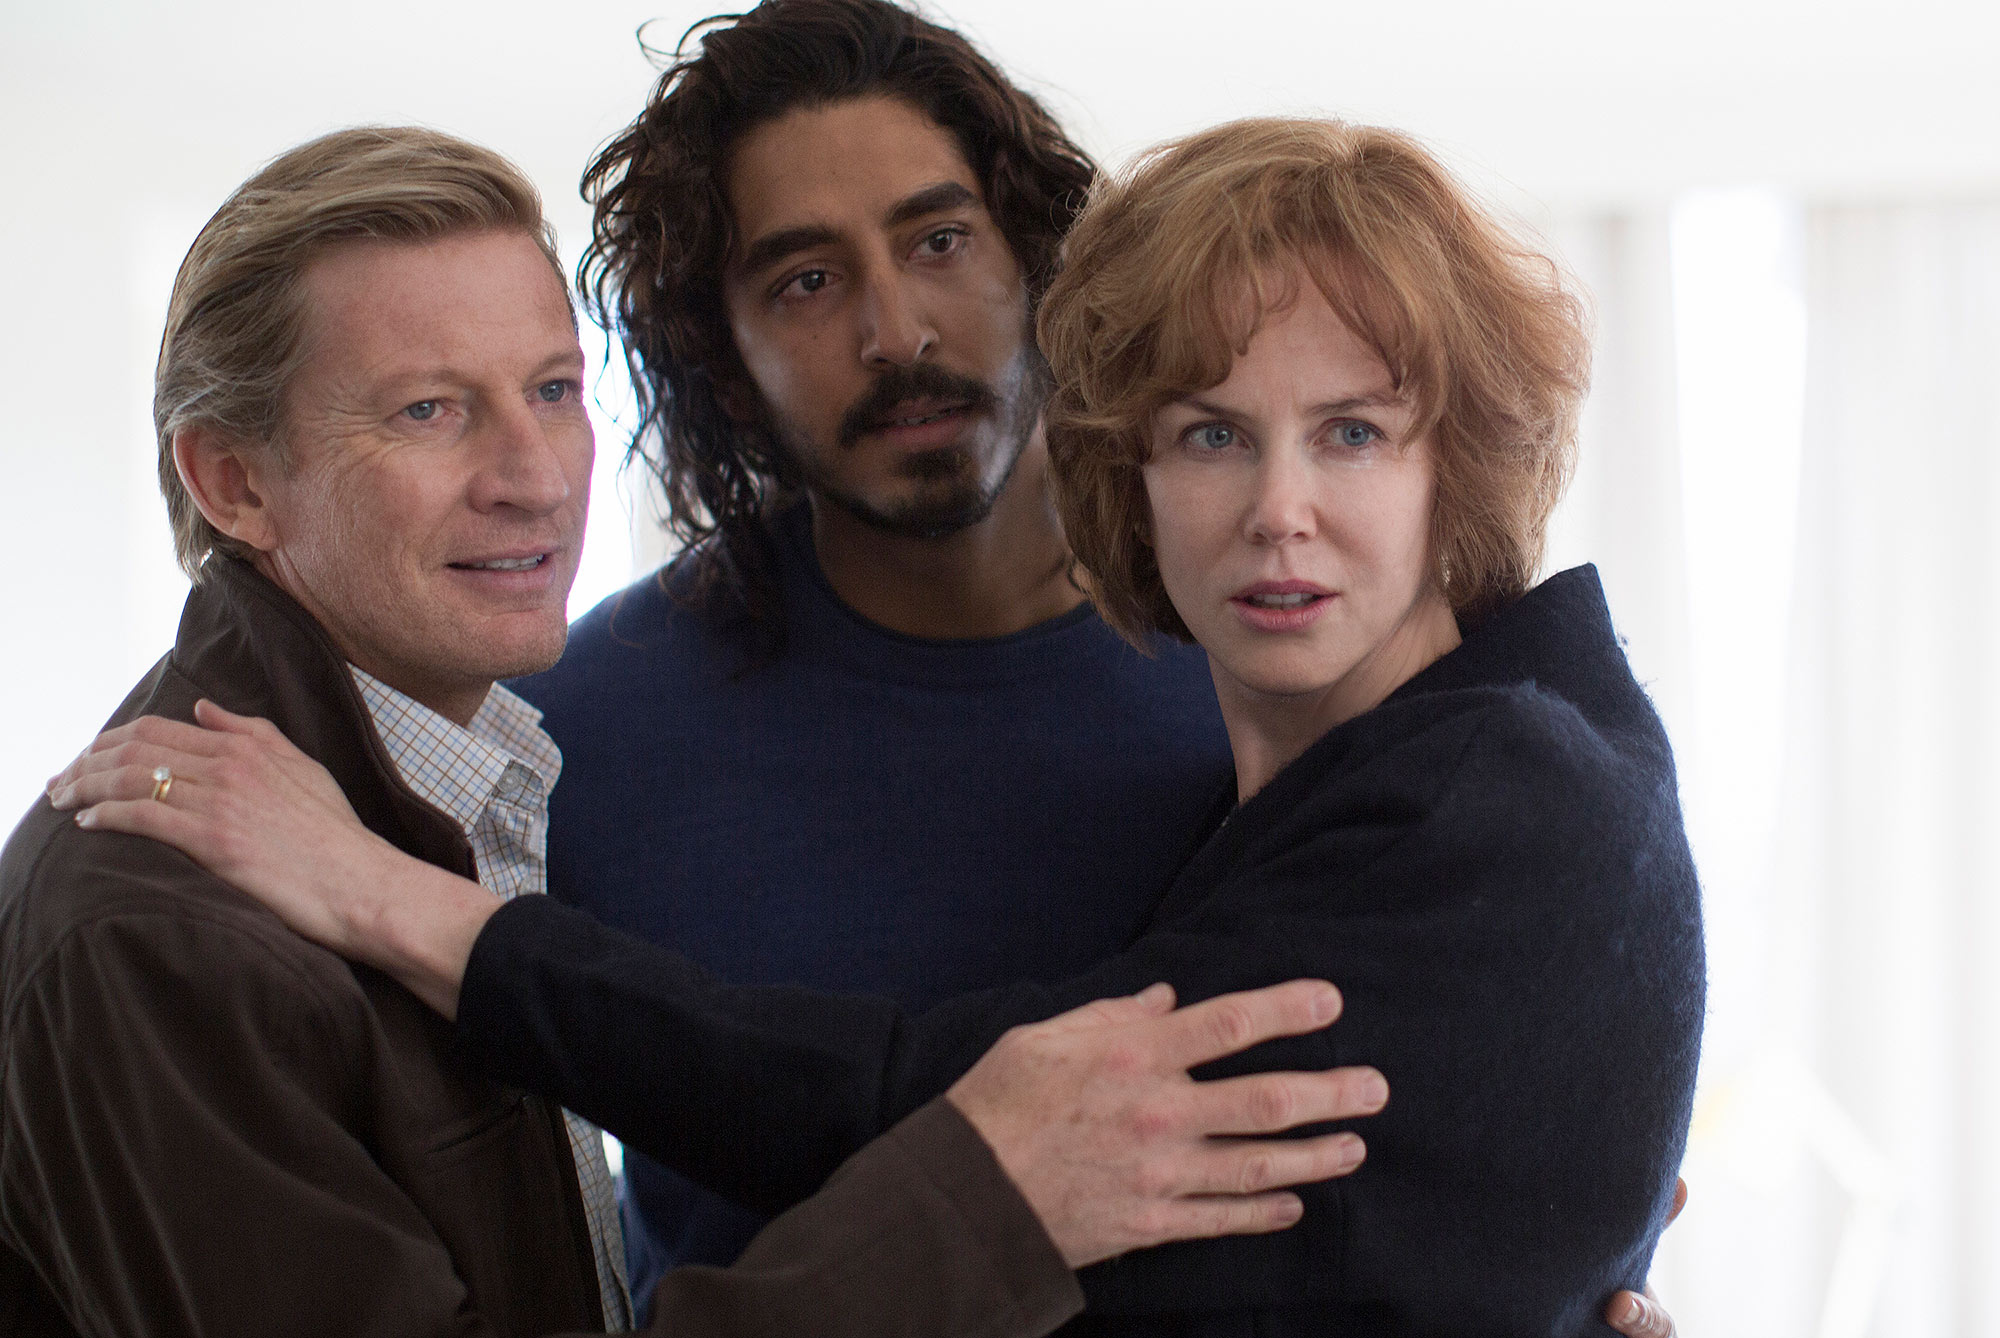 David Wenham, Dev Patel and Nicole Kidman star in LION © Long Way Home Productions 2015 Photo Credit: Courtesy The Weinstein Company